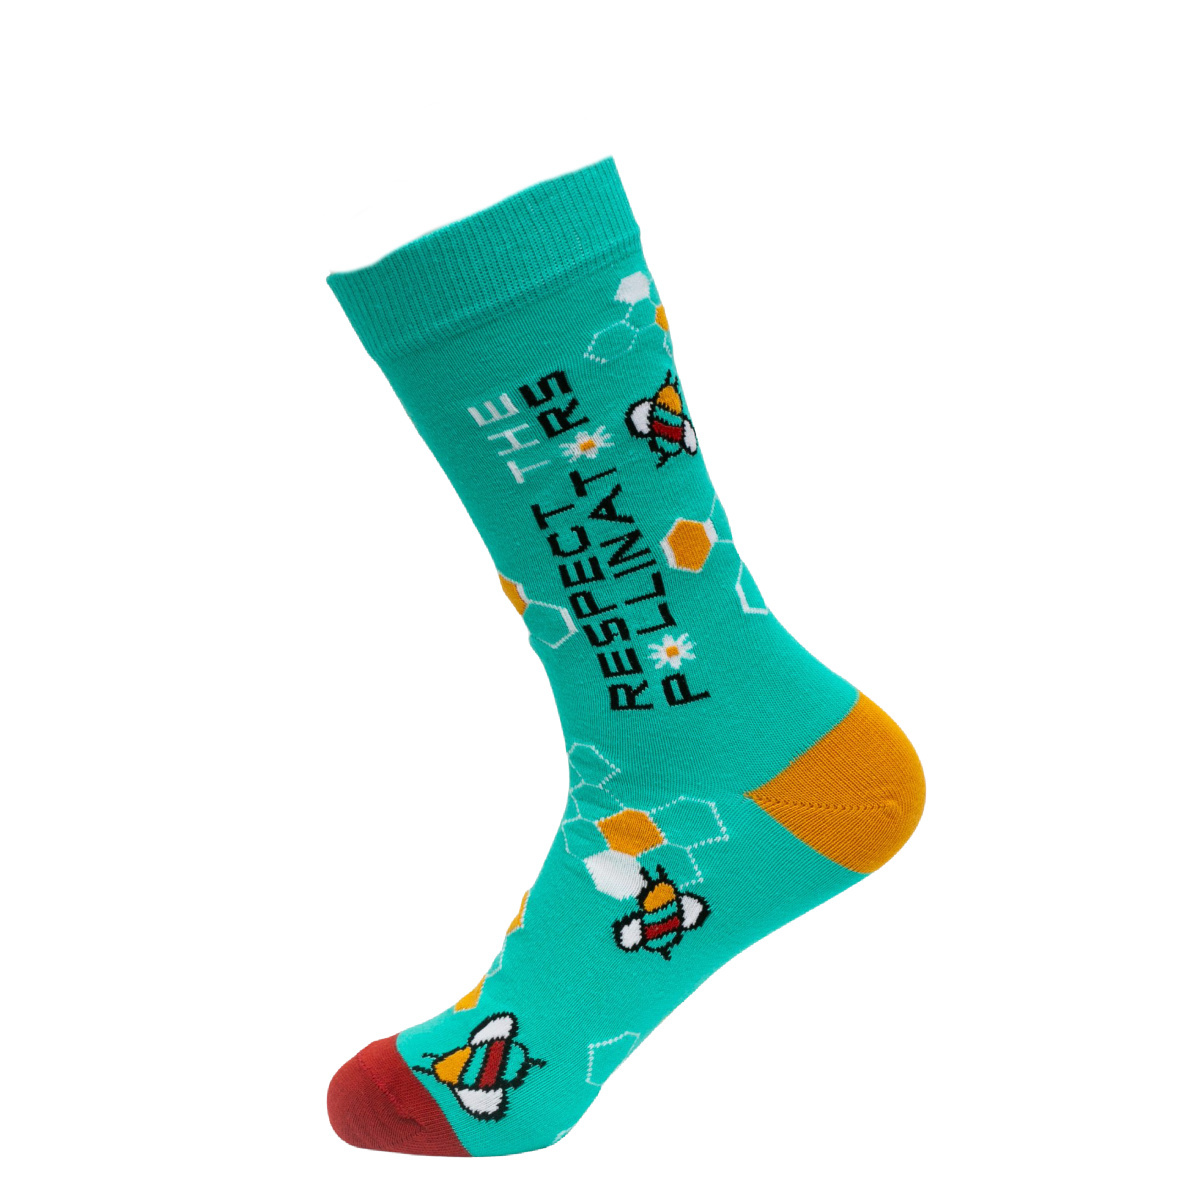 Socks Atomica Socks Atomica Respect The Pollinators